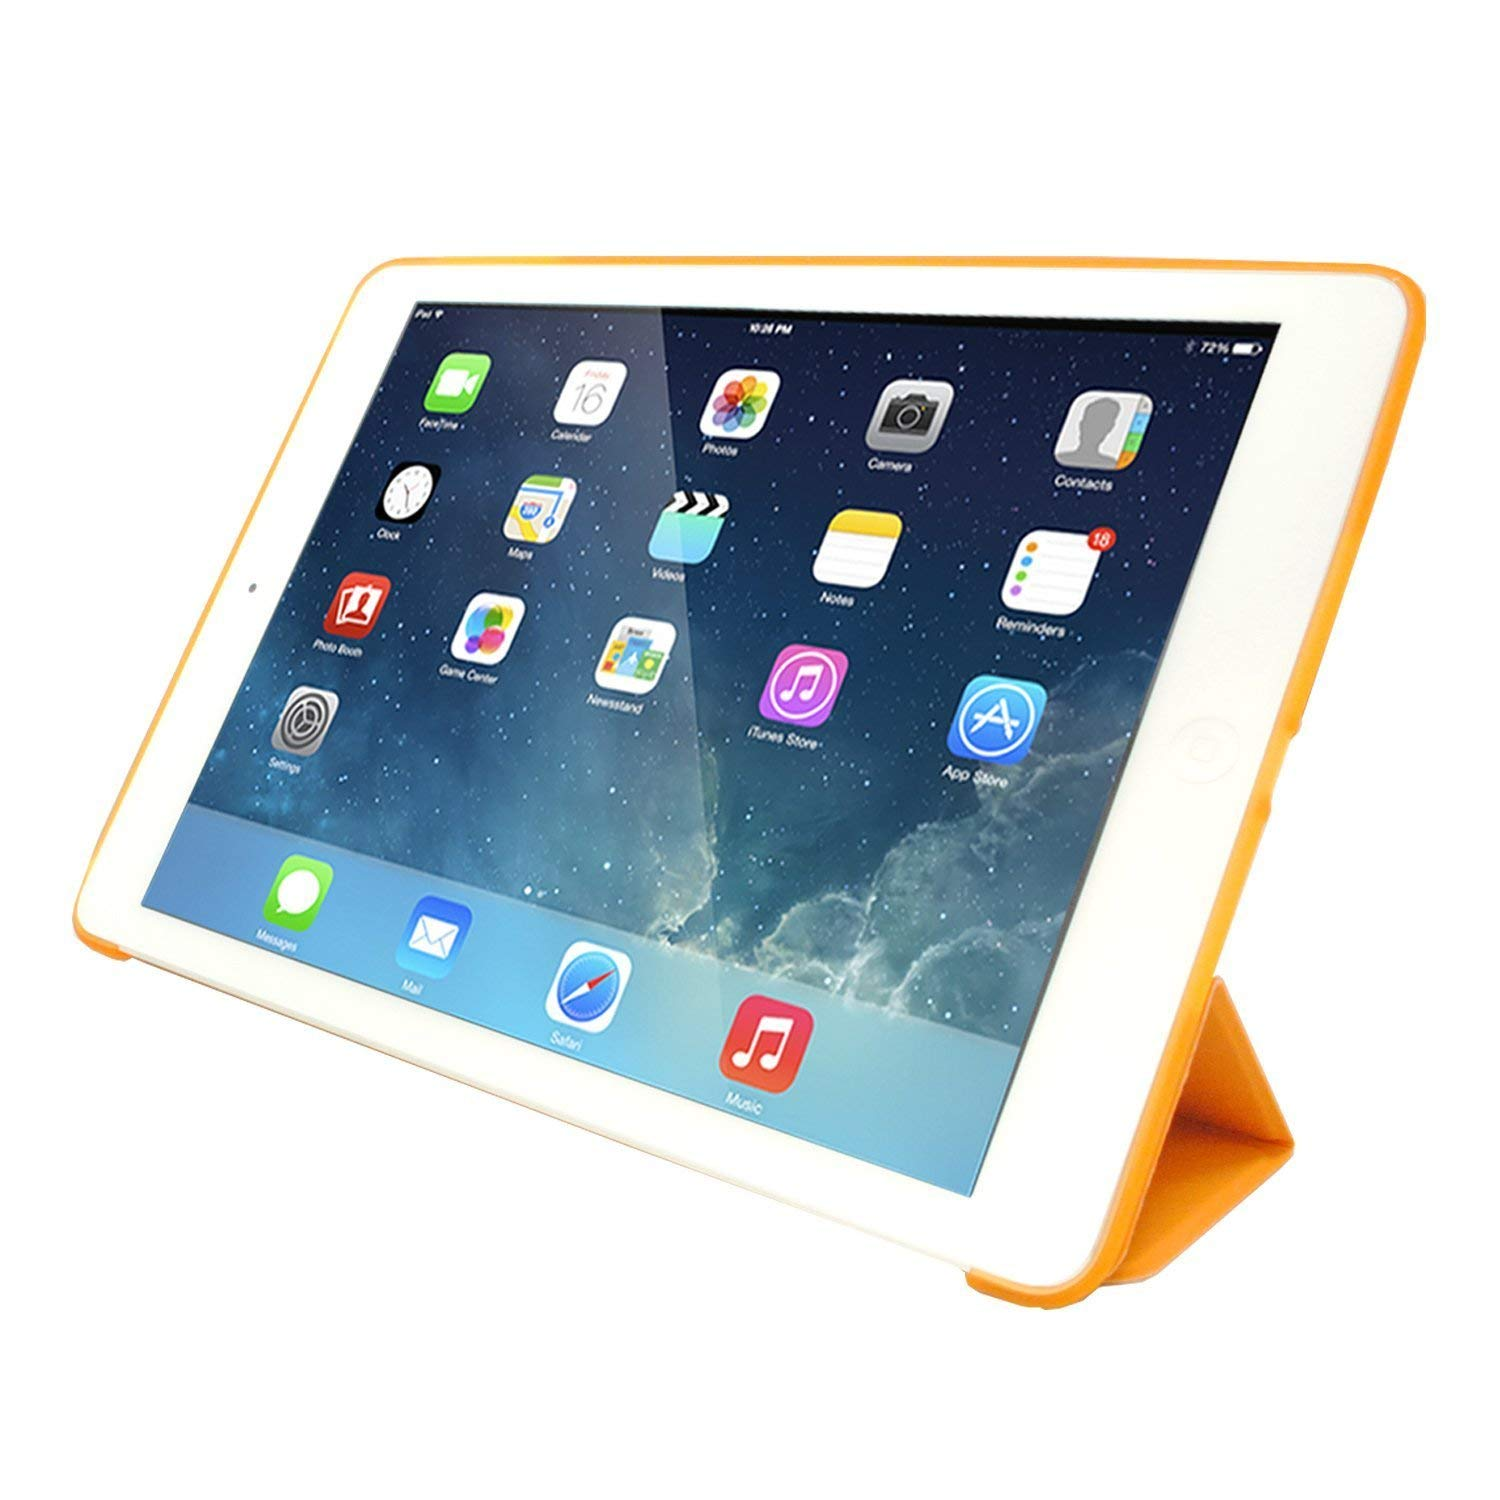 MIIU by Digiparts Ultra Thin Magnetic Smart Cover & Clear Back Case for Apple iPad Air(5th Gen), Yellow - image 3 of 5